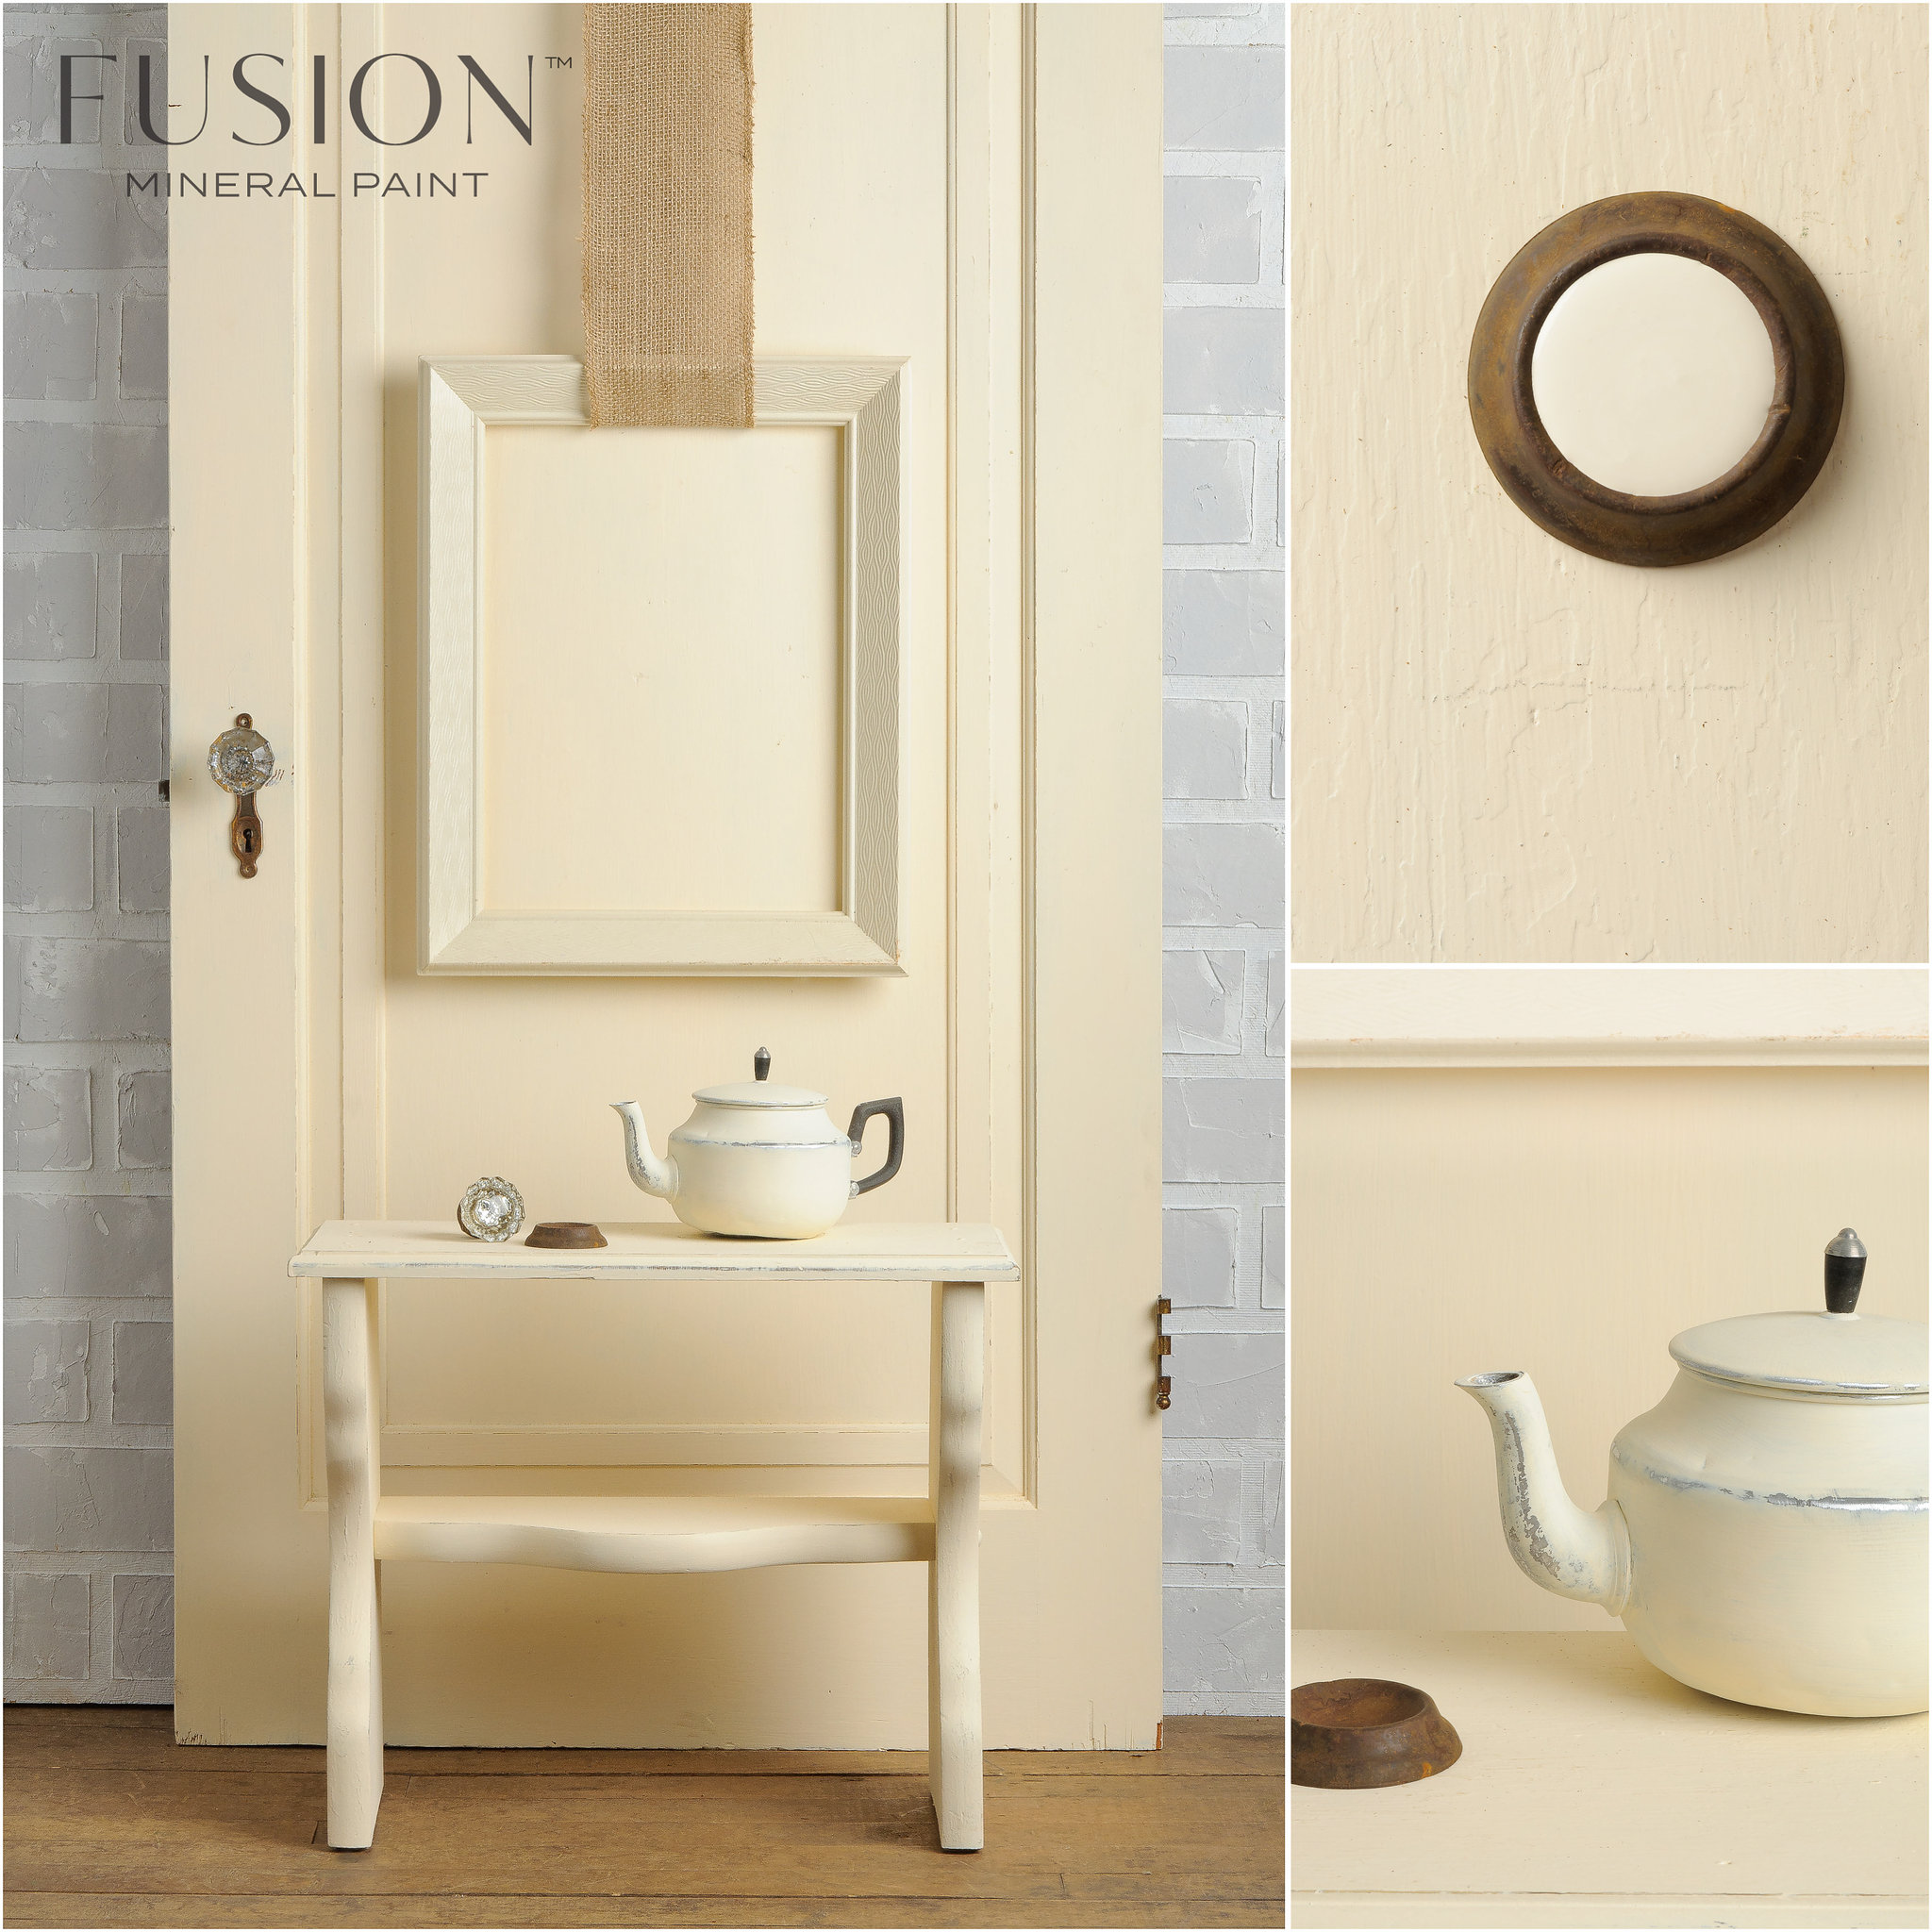 End table and Door Painted in Limestone Fusion Mineral Paint